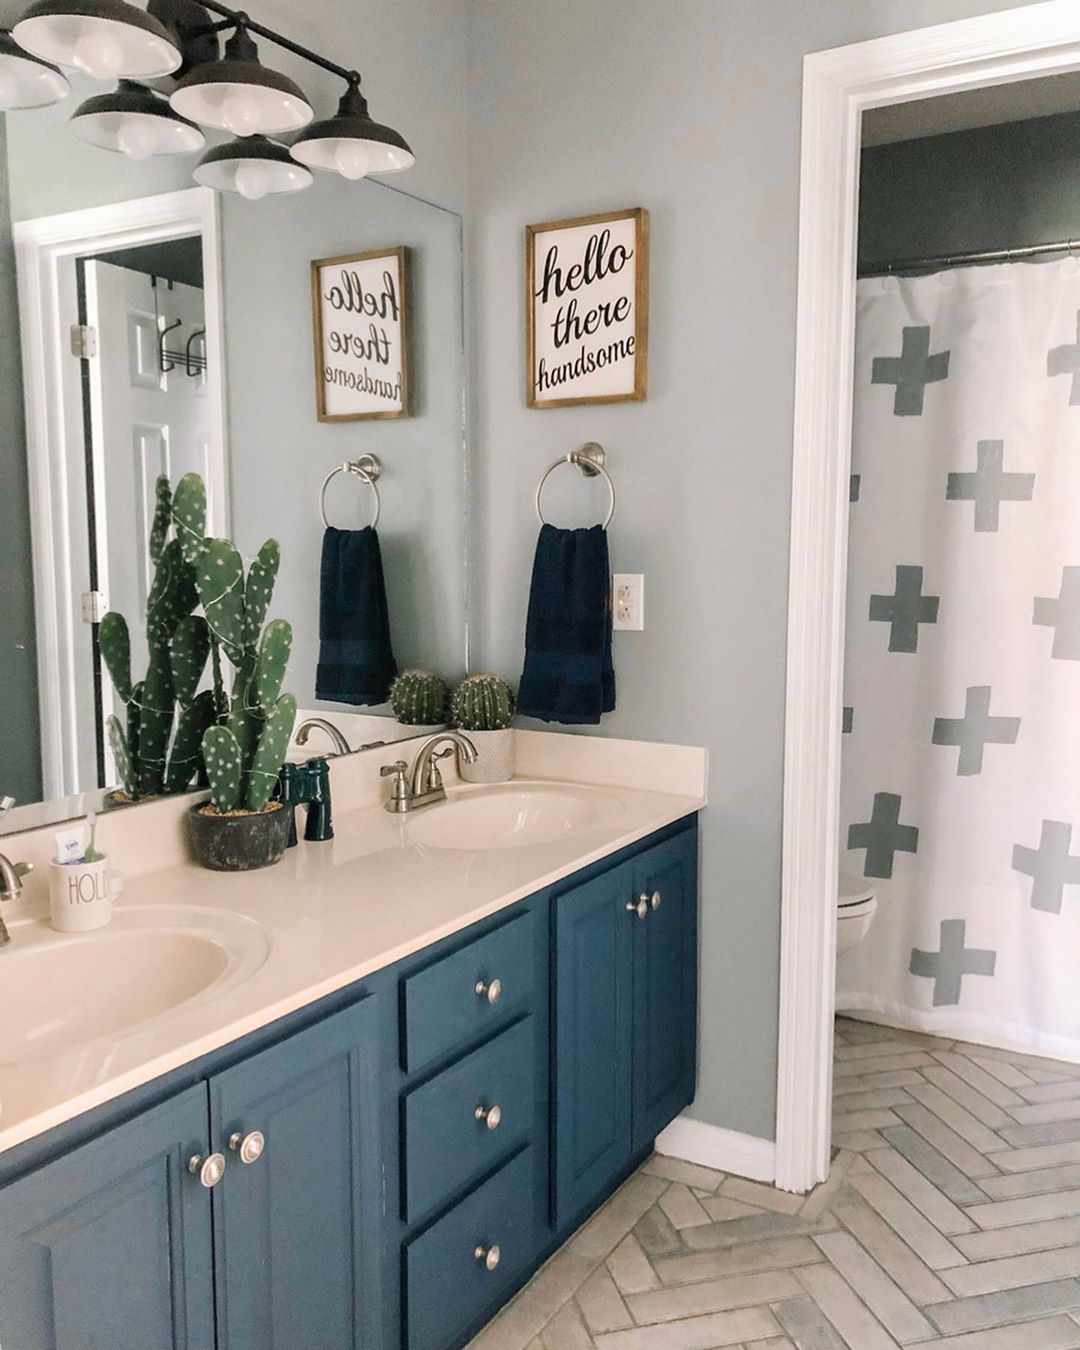 Best Color For Bathroom To Sell House